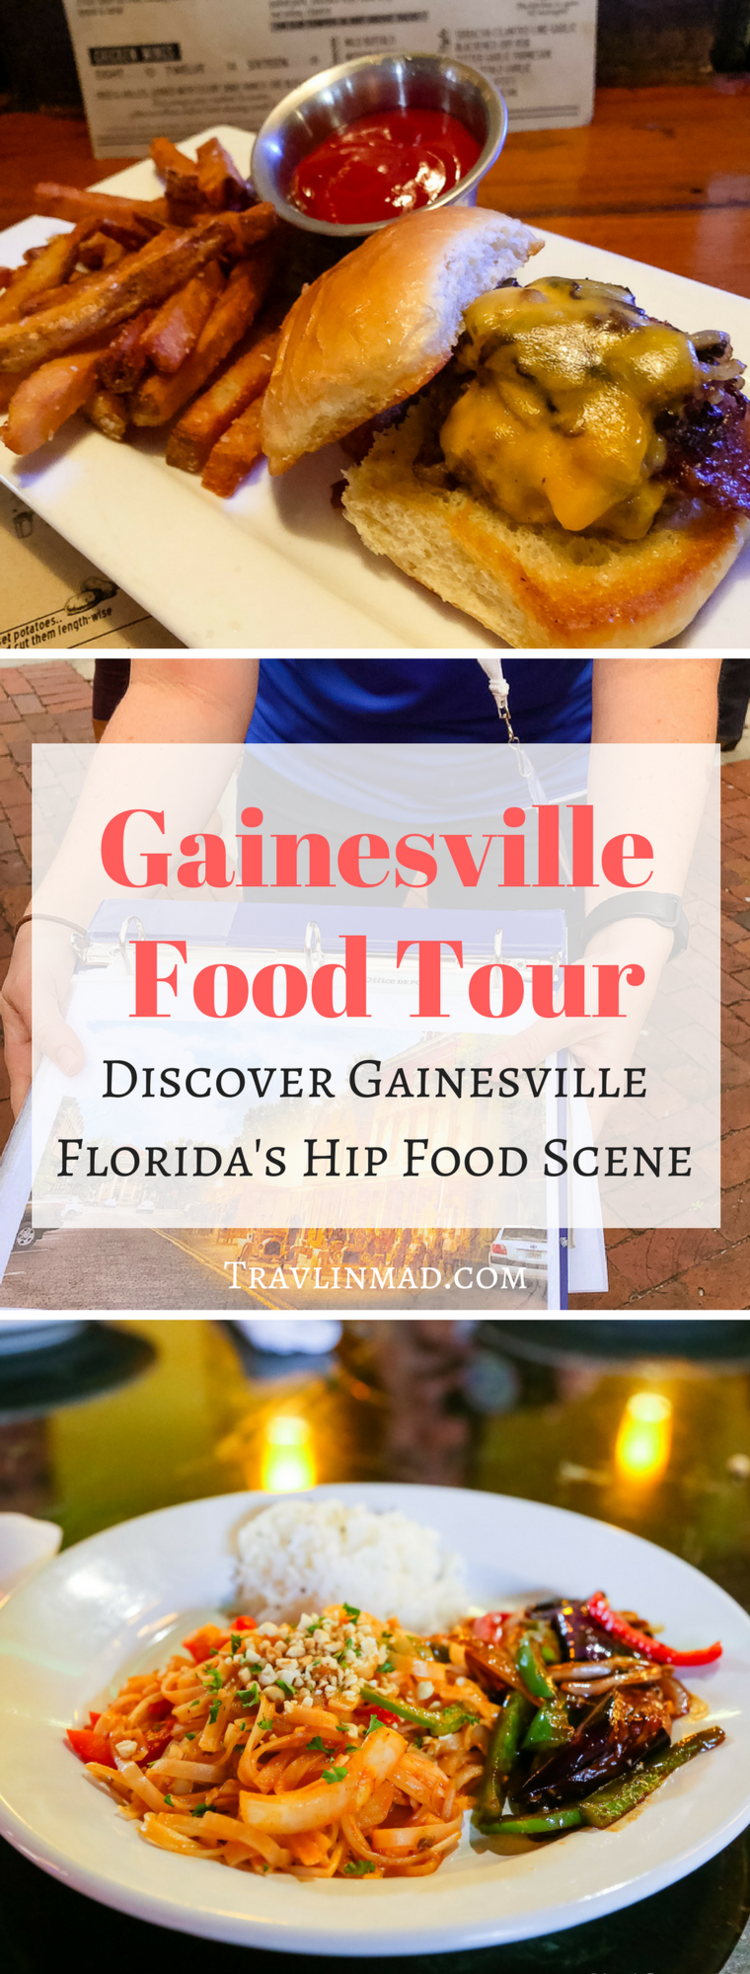 Take the Gainesville Food Tour, a fun 3-hour walking food tour that explores the best foods, history, and local culture in this hip Florida university town!